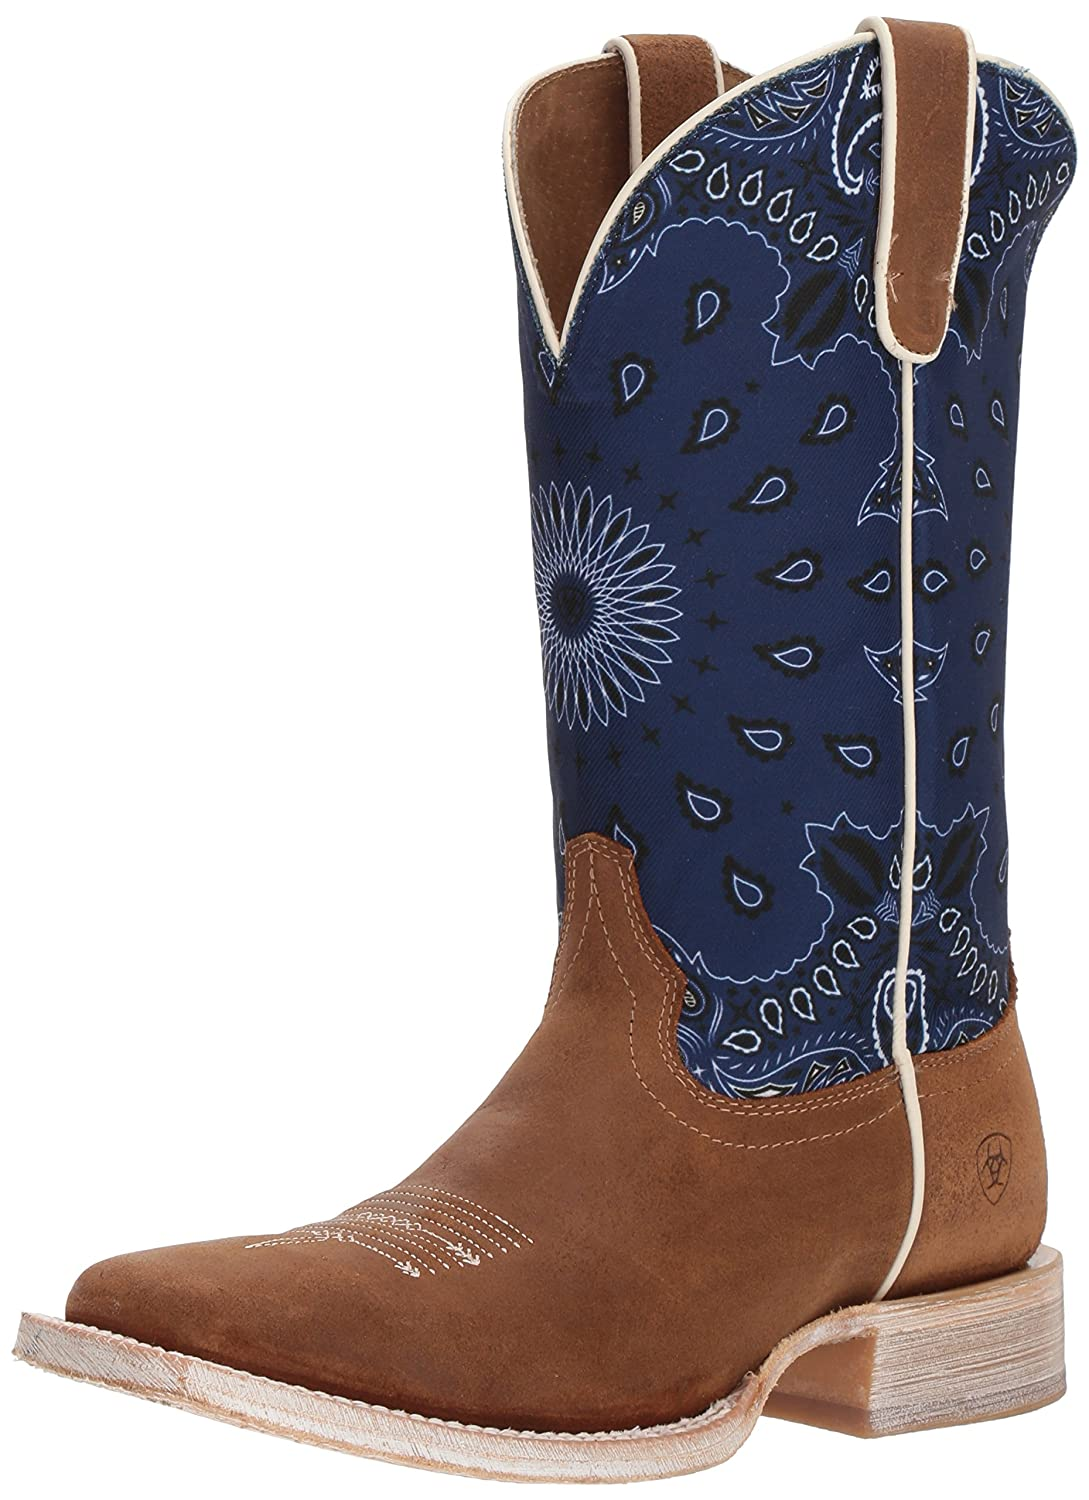 Ariat Women's Circuit Savanna Western Boot B076MMS28V 9 M US|Taurus Tan/Blue Paisley Print